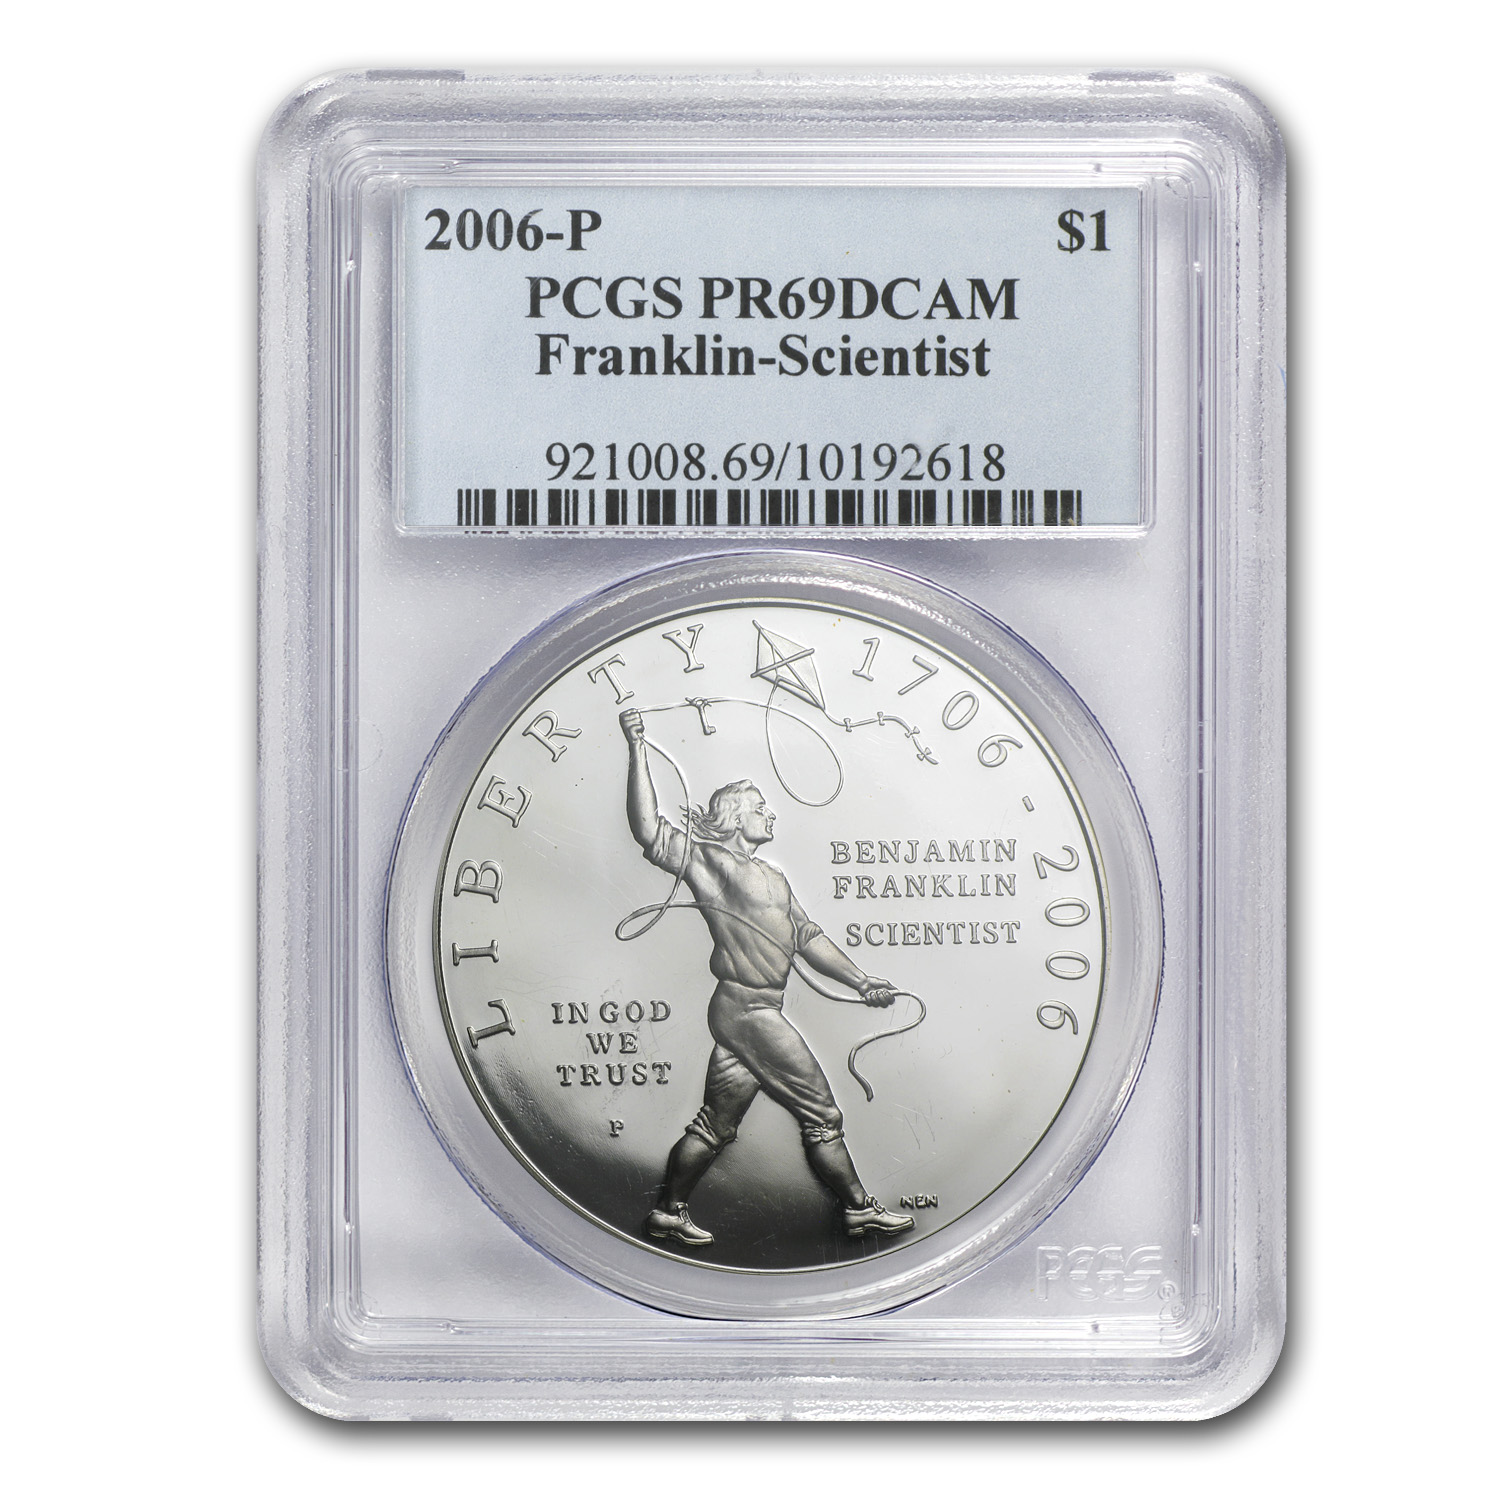 2006-P Ben Franklin Scientist $1 Silver Commem PR-69 DCAM PCGS